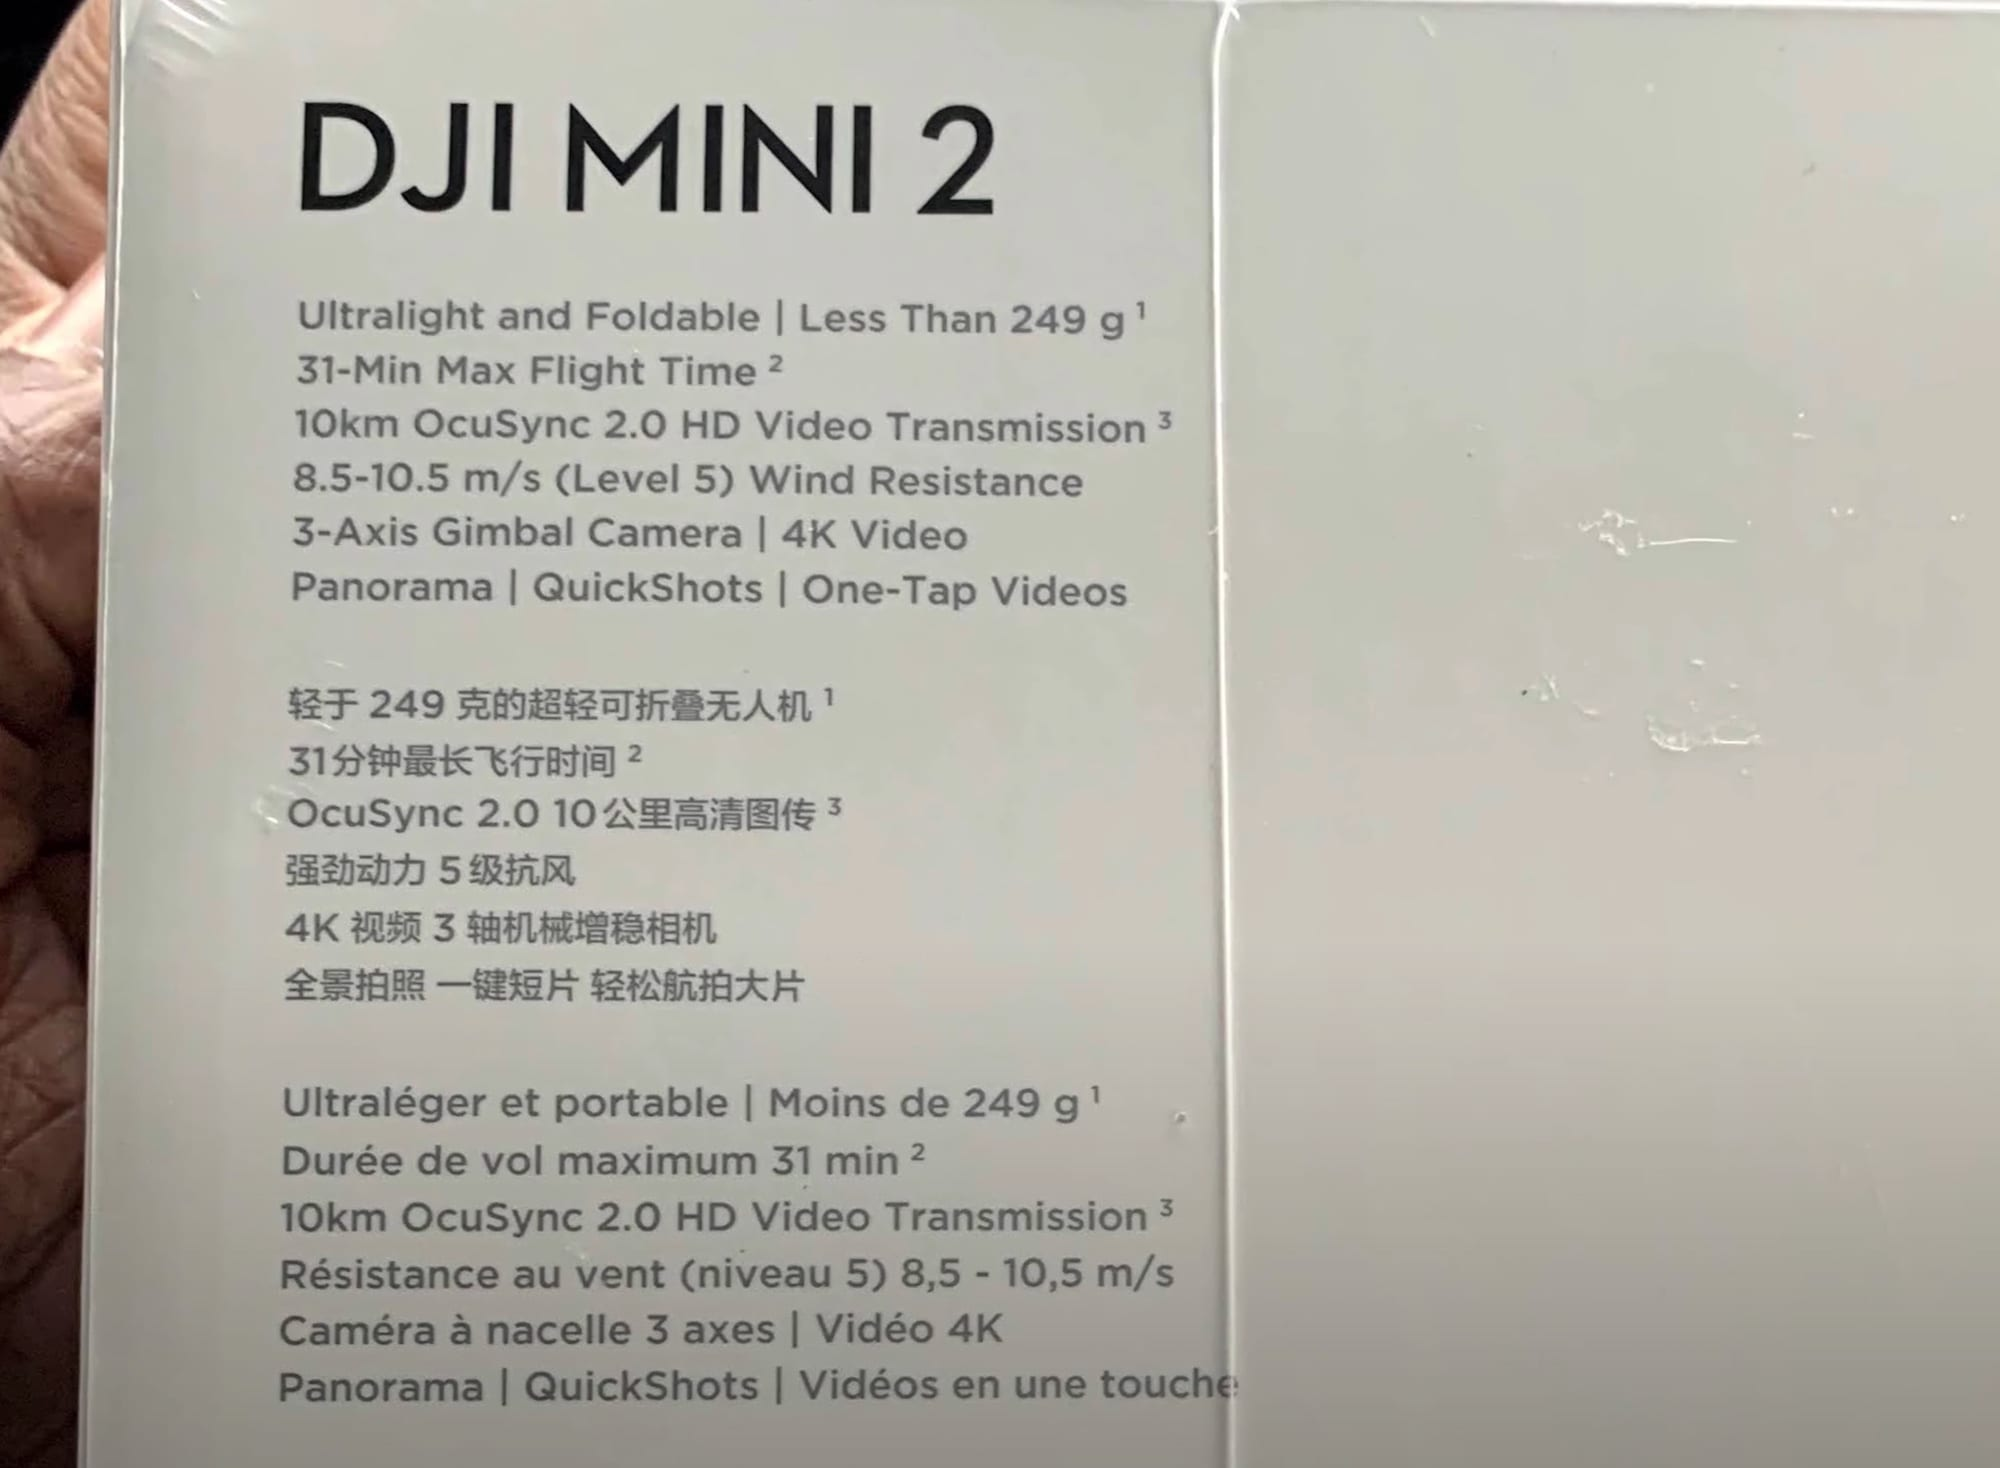 DJI Mini 2 specifications - 4K and Ocusync 2.0